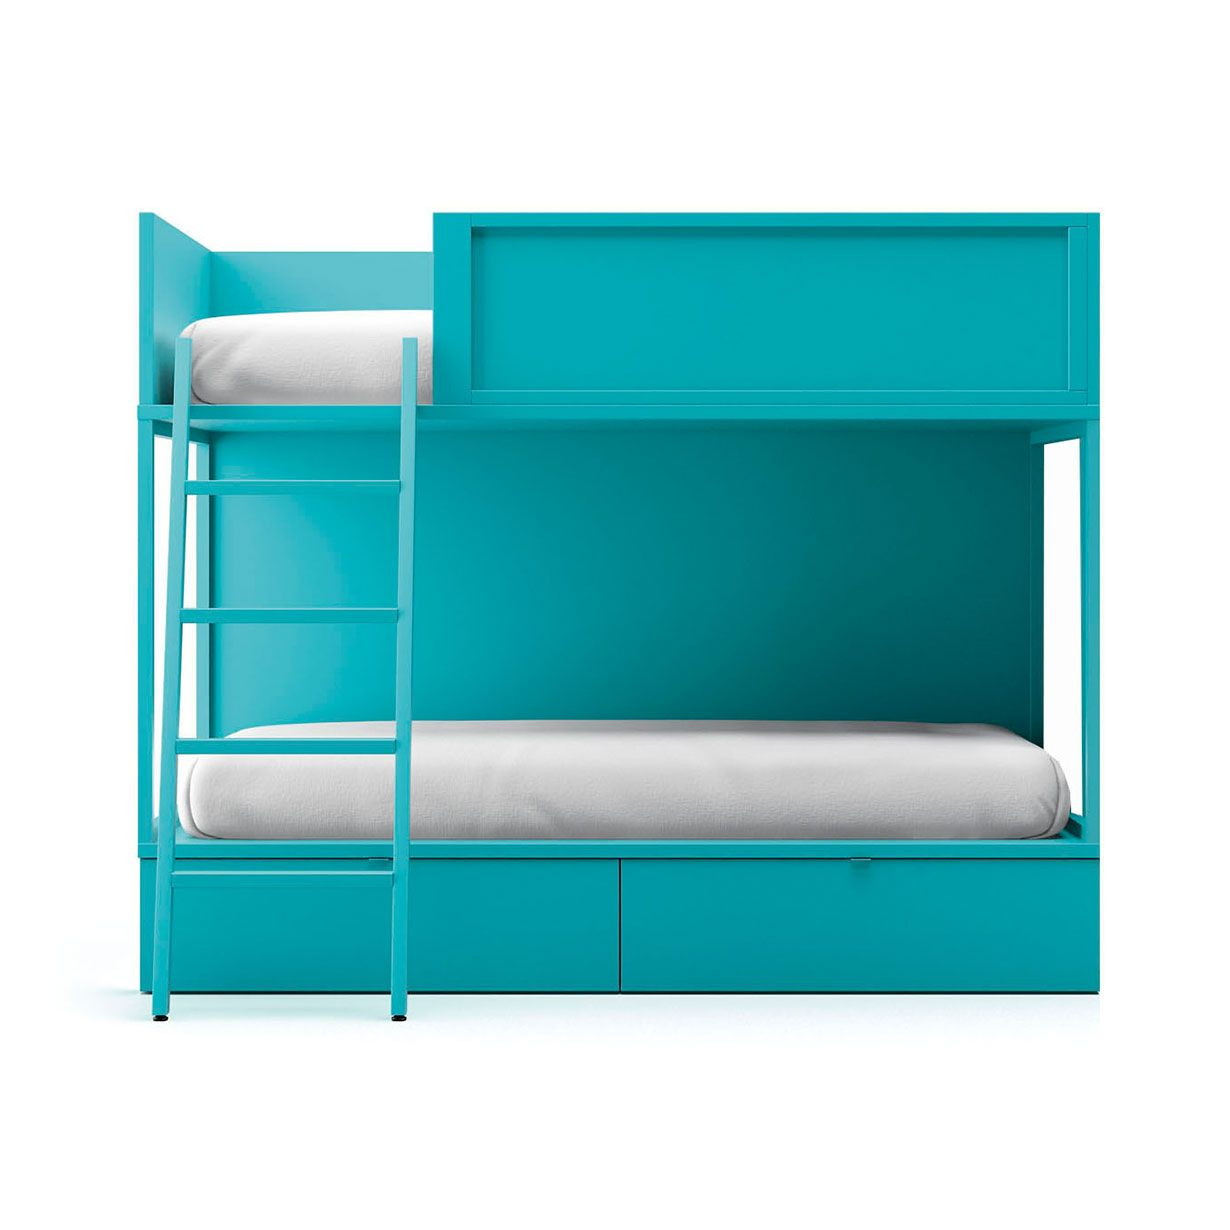 Vagon bunk bed by Lagrama | LOVEThESIGN